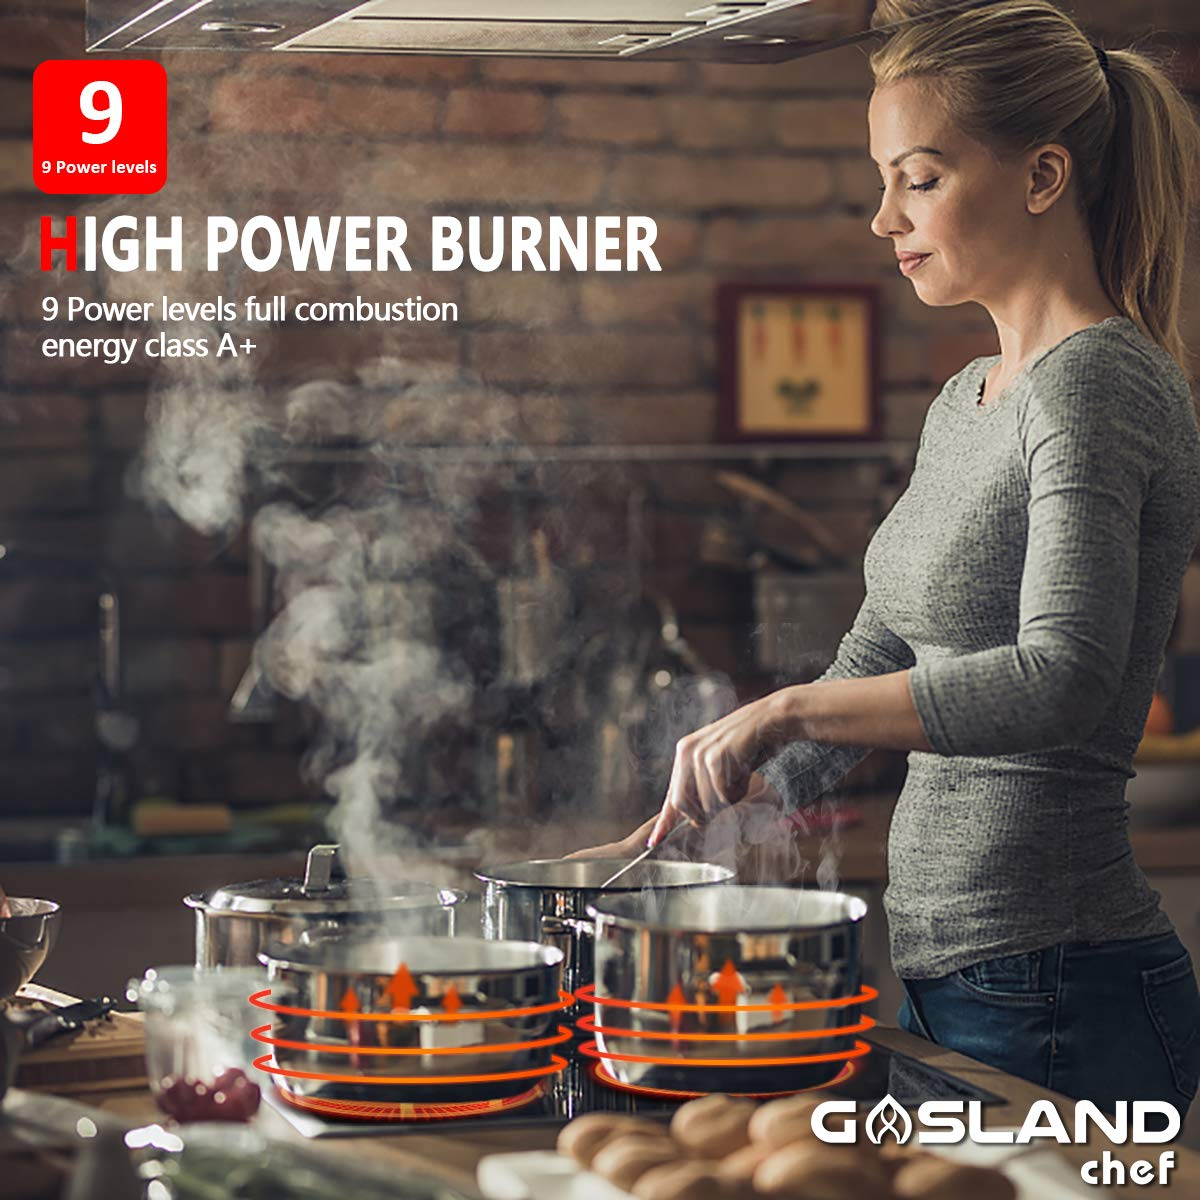 Induction Cooktop Kids Safety Lock Easy To Clean 30 Electric Stove With 4 Burners Gasland chef IH77BF Built-in Induction Cooker 9 Heating Level Settings Vitro Ceramic Surface Electric Cooktop